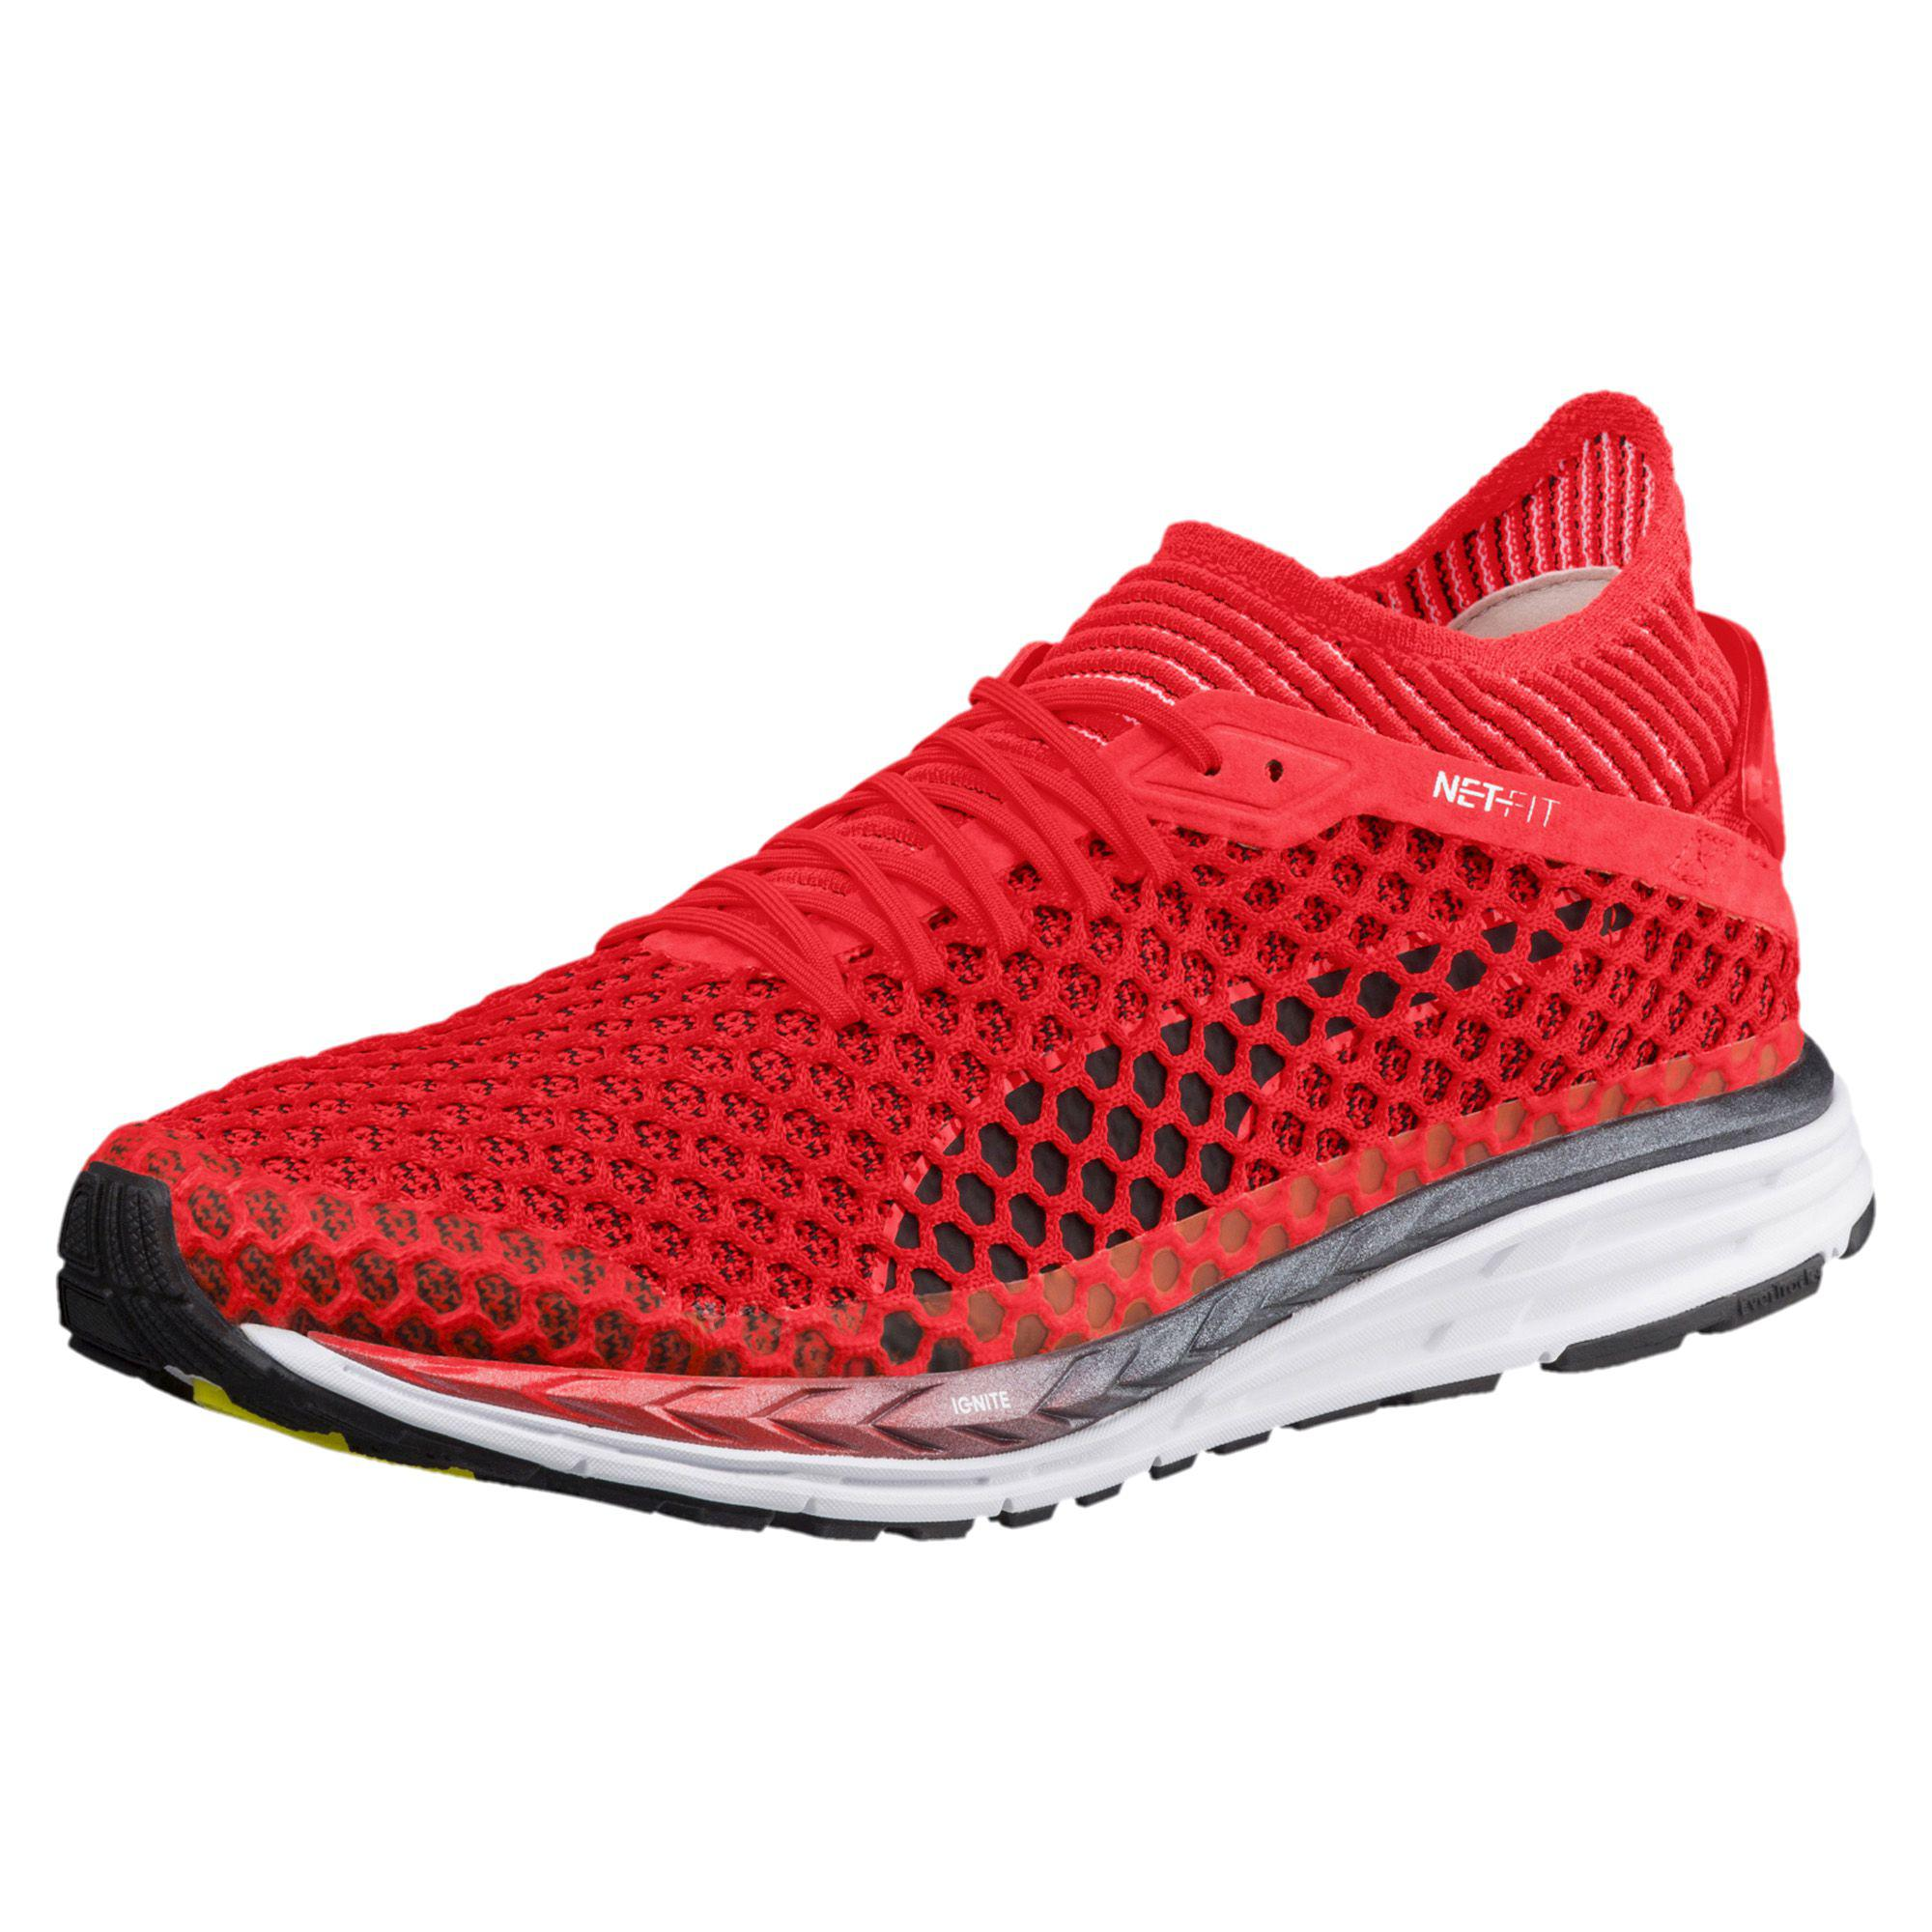 4d46082440e PUMA Speed Ignite Netfit 2 Men s Running Shoes in Red for Men - Lyst